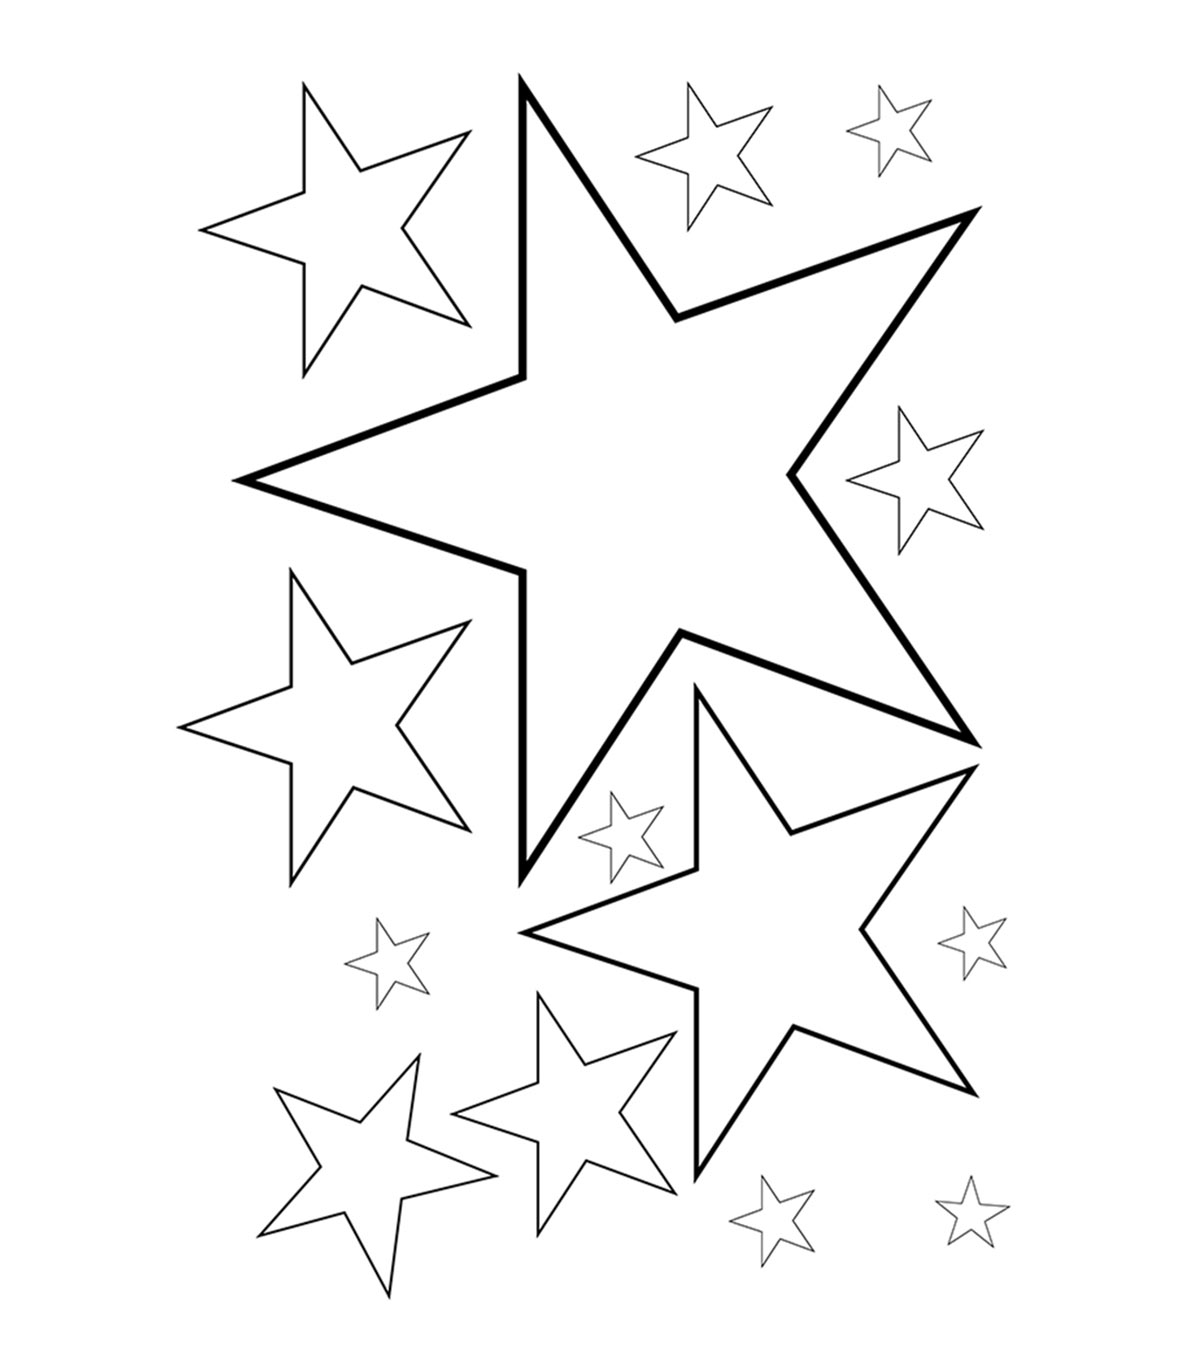 coloring pic of star kindergarten worksheet guide pictures clip art line star of pic coloring